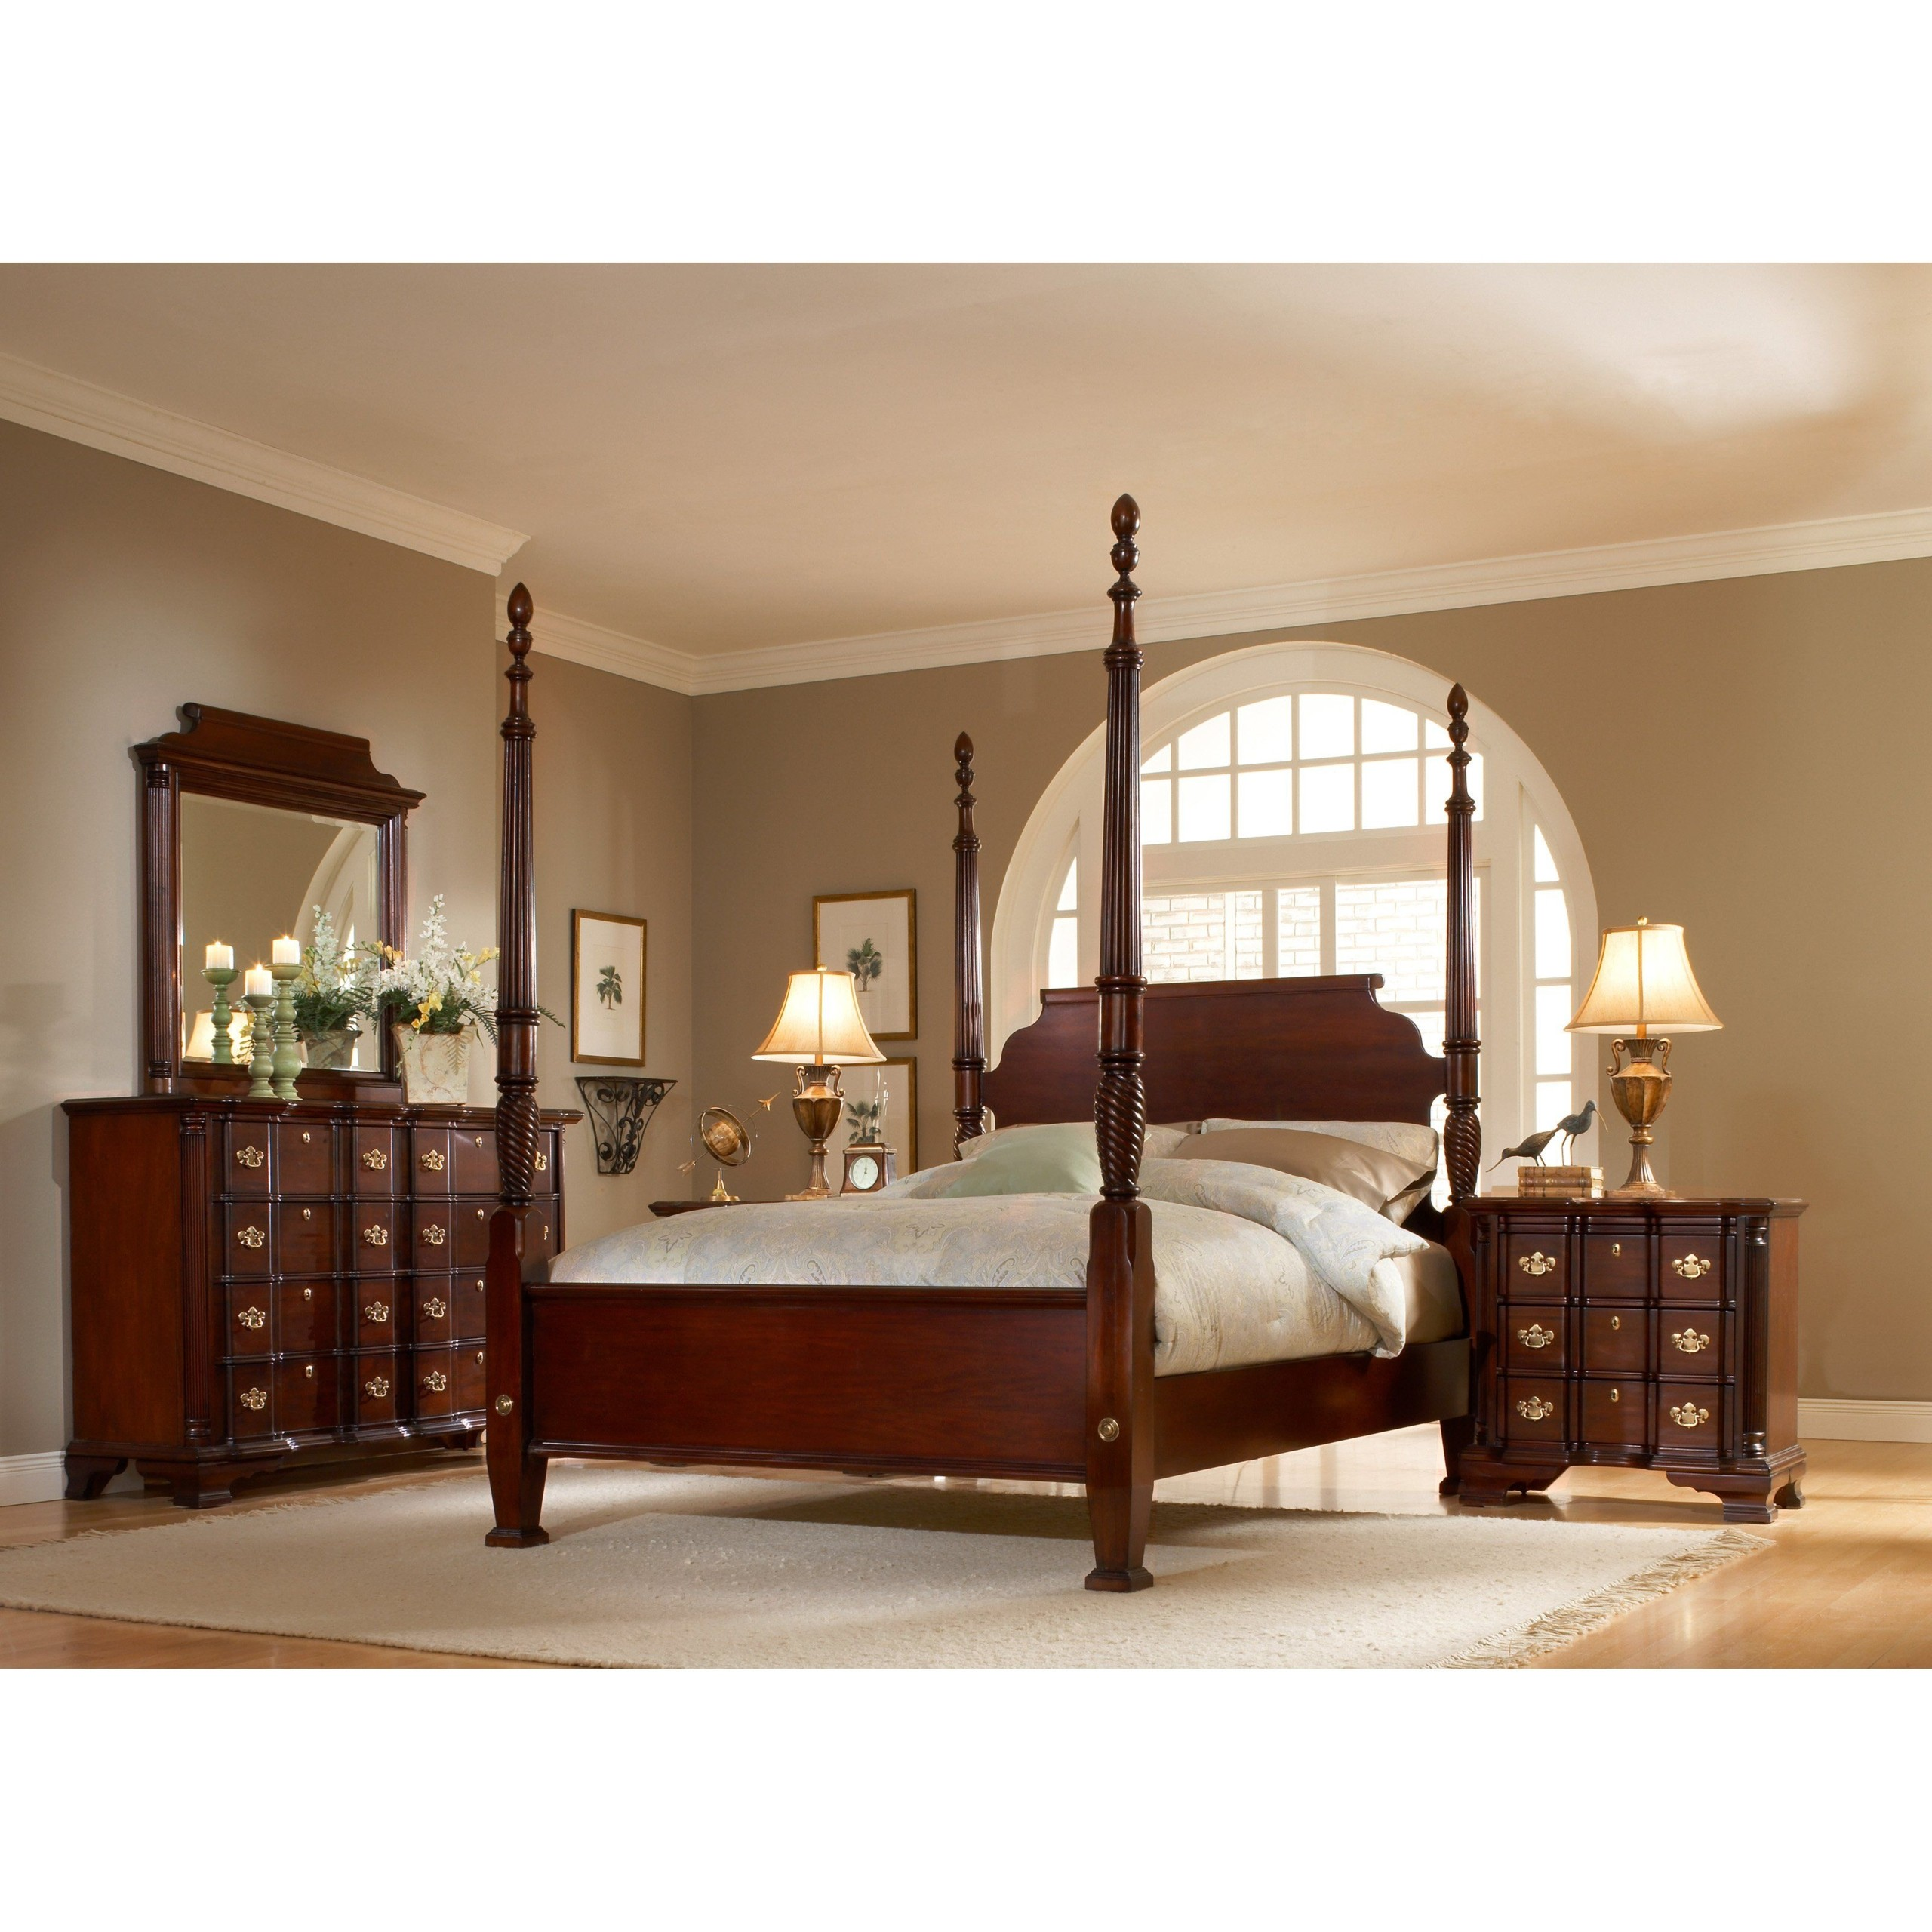 King size four poster bed frame 1  sc 1 st  Foter & King Size Four Poster Bed - Ideas on Foter